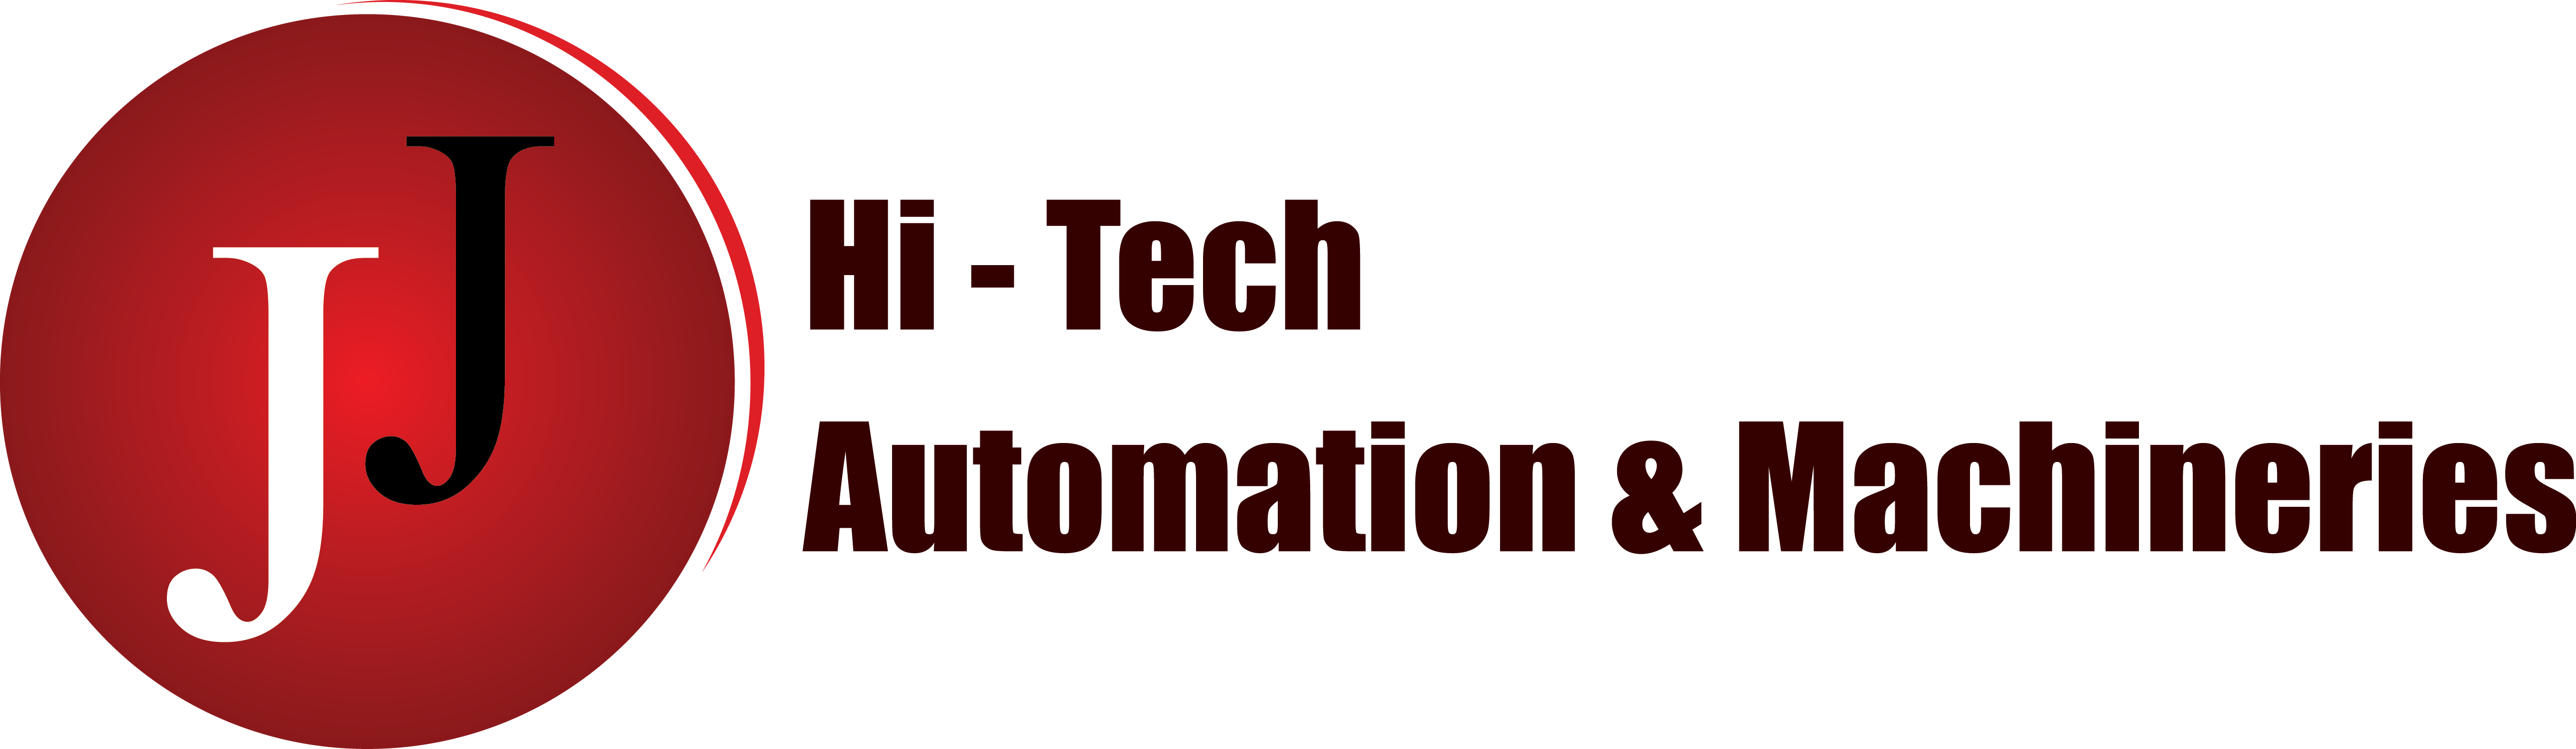 http://www.jjhitechautomation.com/JJ HI - TECH AUTOMATION & MACHINERIES